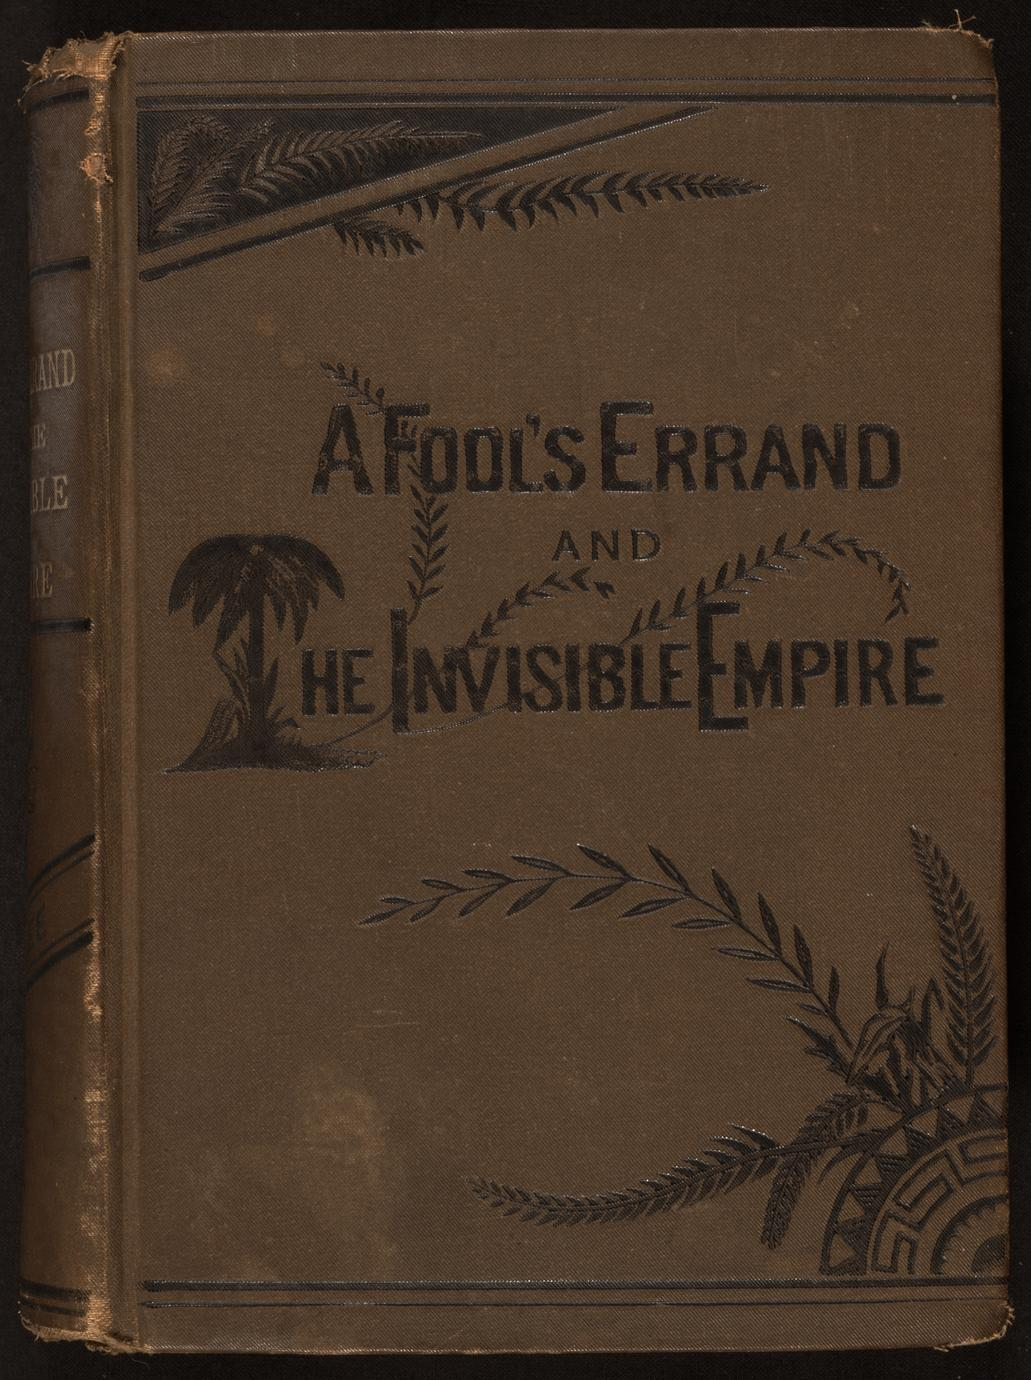 A fool's errand : by one of the fools (1 of 2)